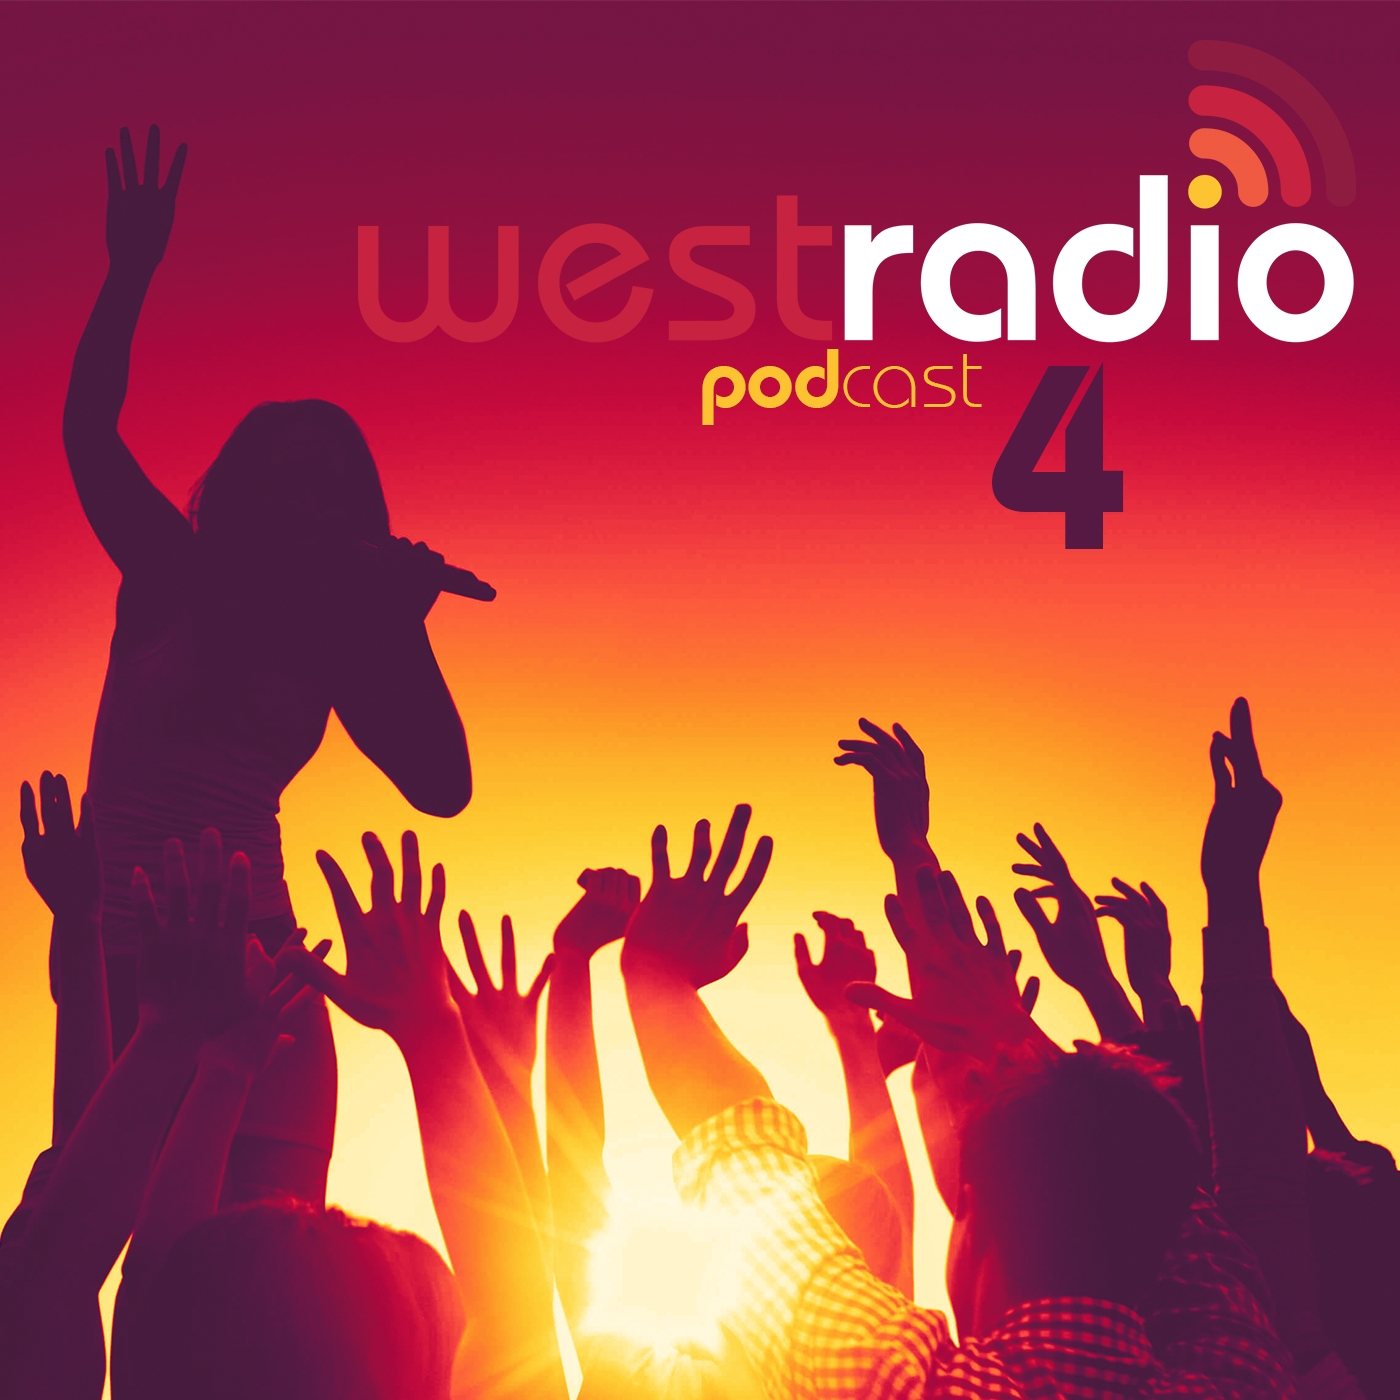 WestRadio - Podcast - 4.0